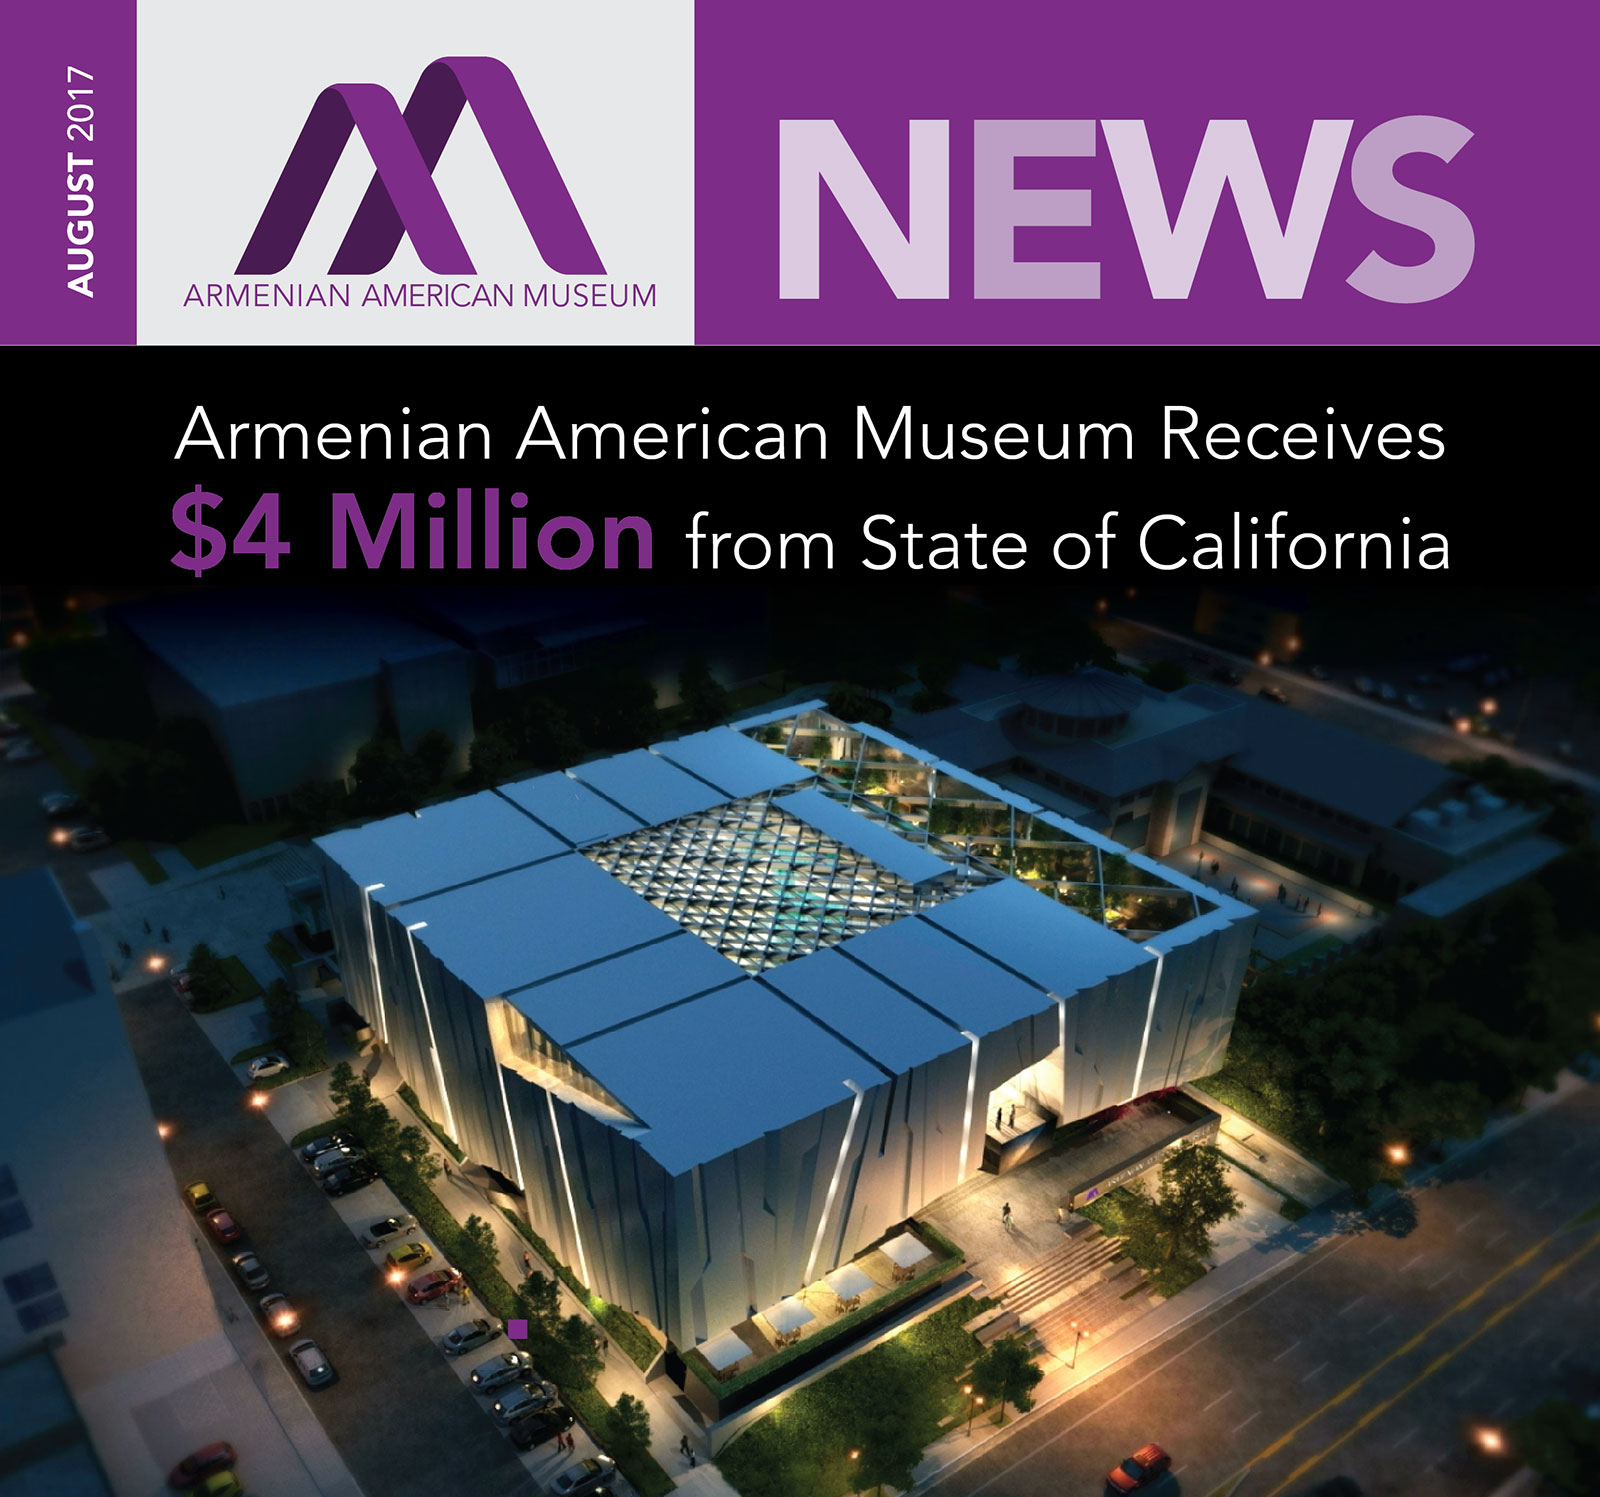 Armenian American Museum Newsletter August 2017